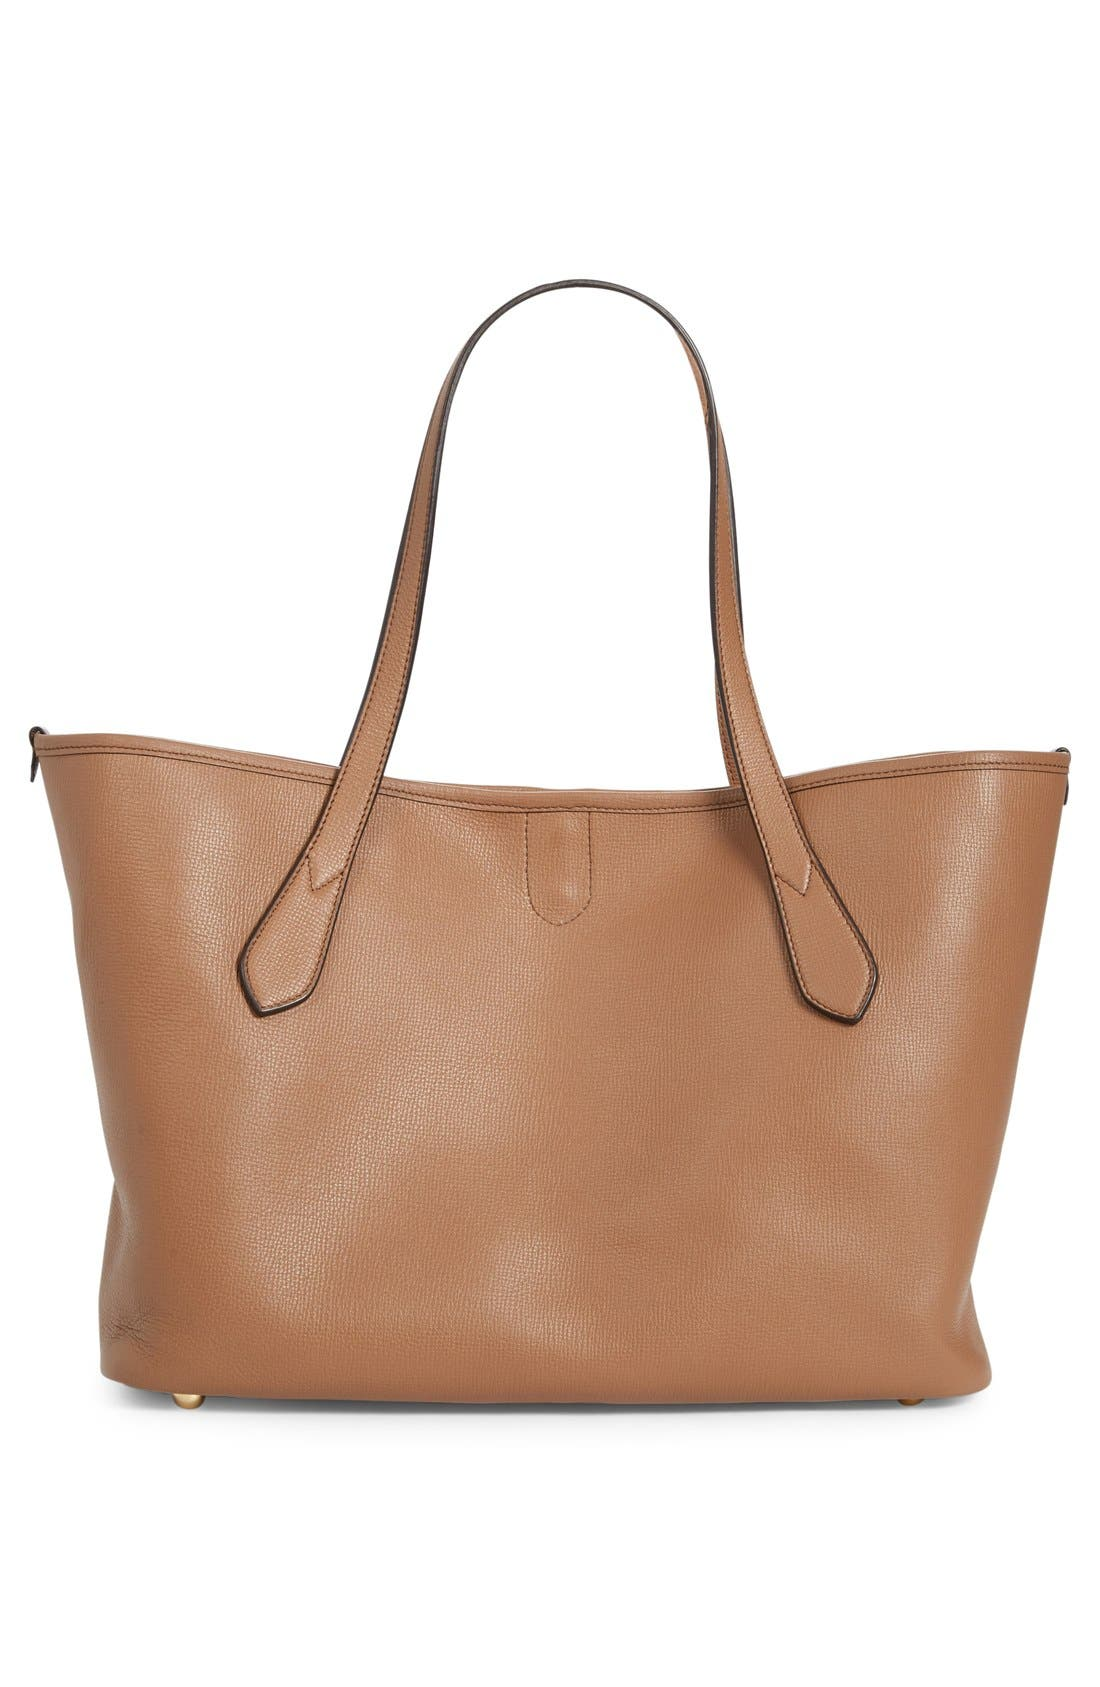 Alternate Image 3  - Burberry 'Medium Honeybrook' Leather Tote